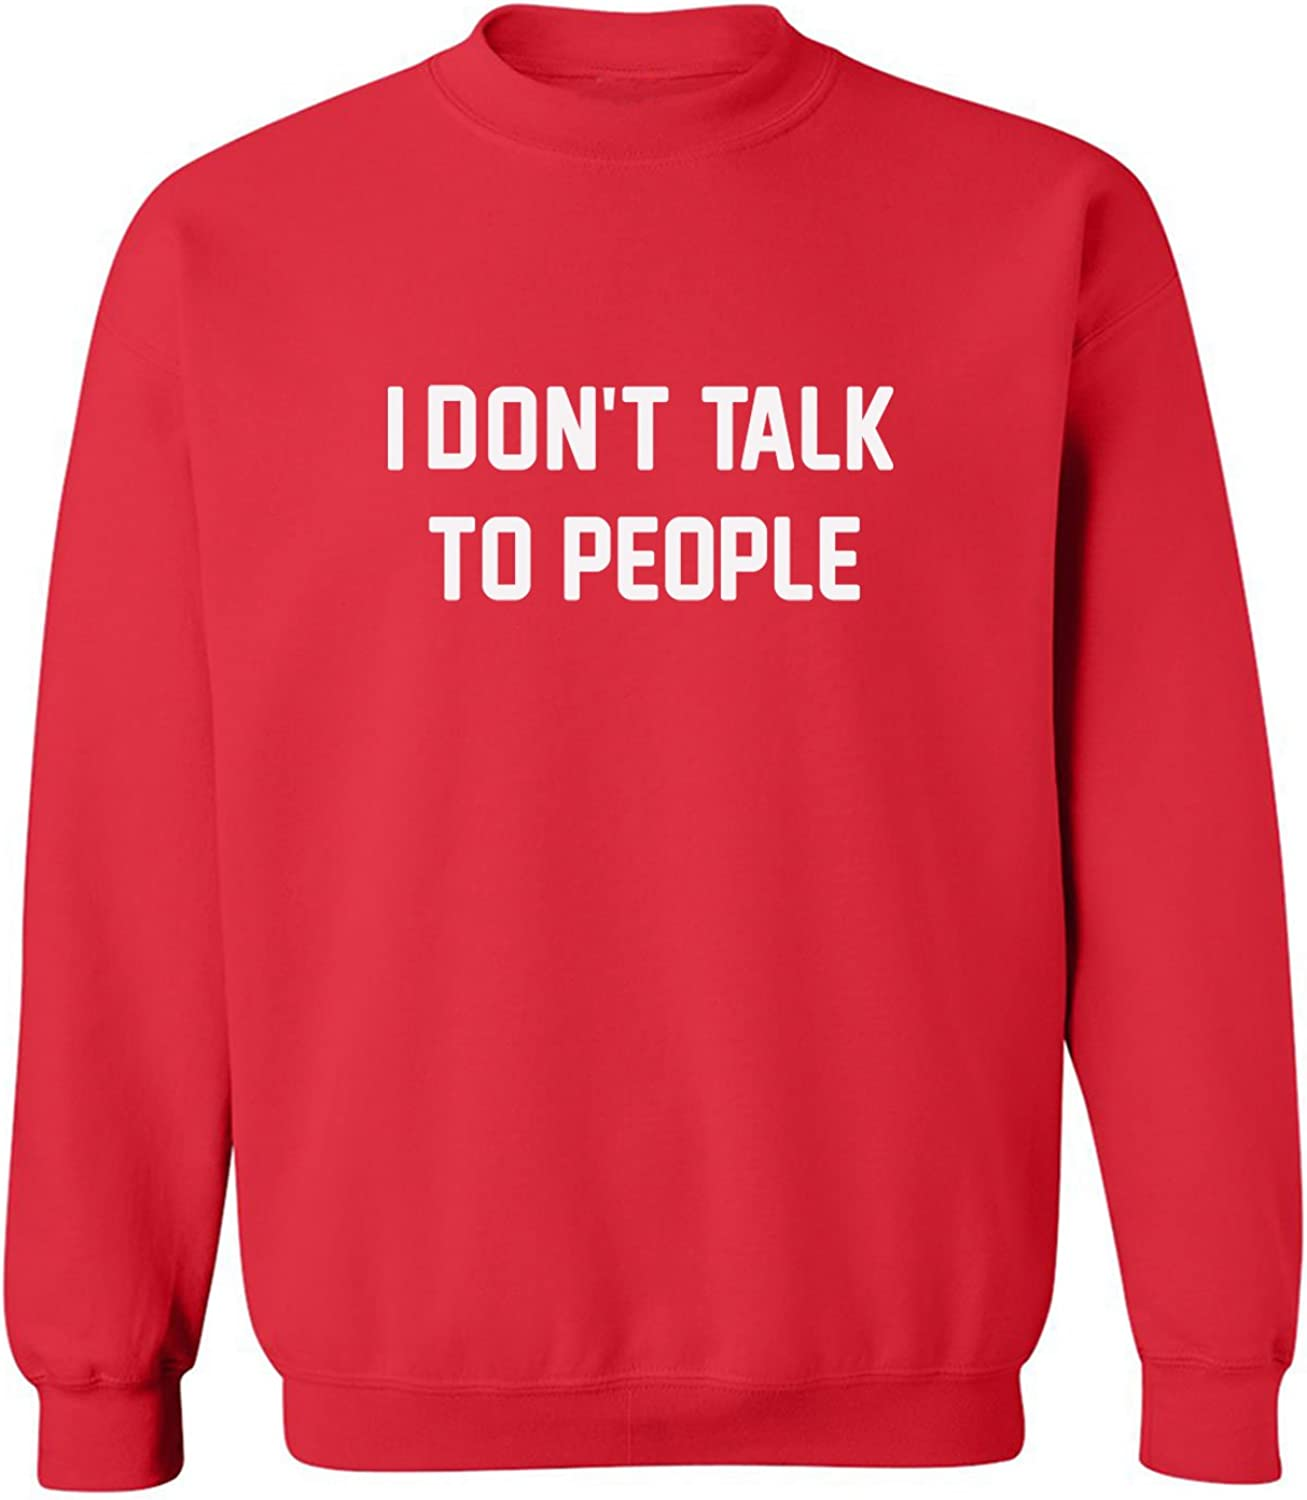 I Don't Talk to People Crewneck Sweatshirt in Red - XXX-Large